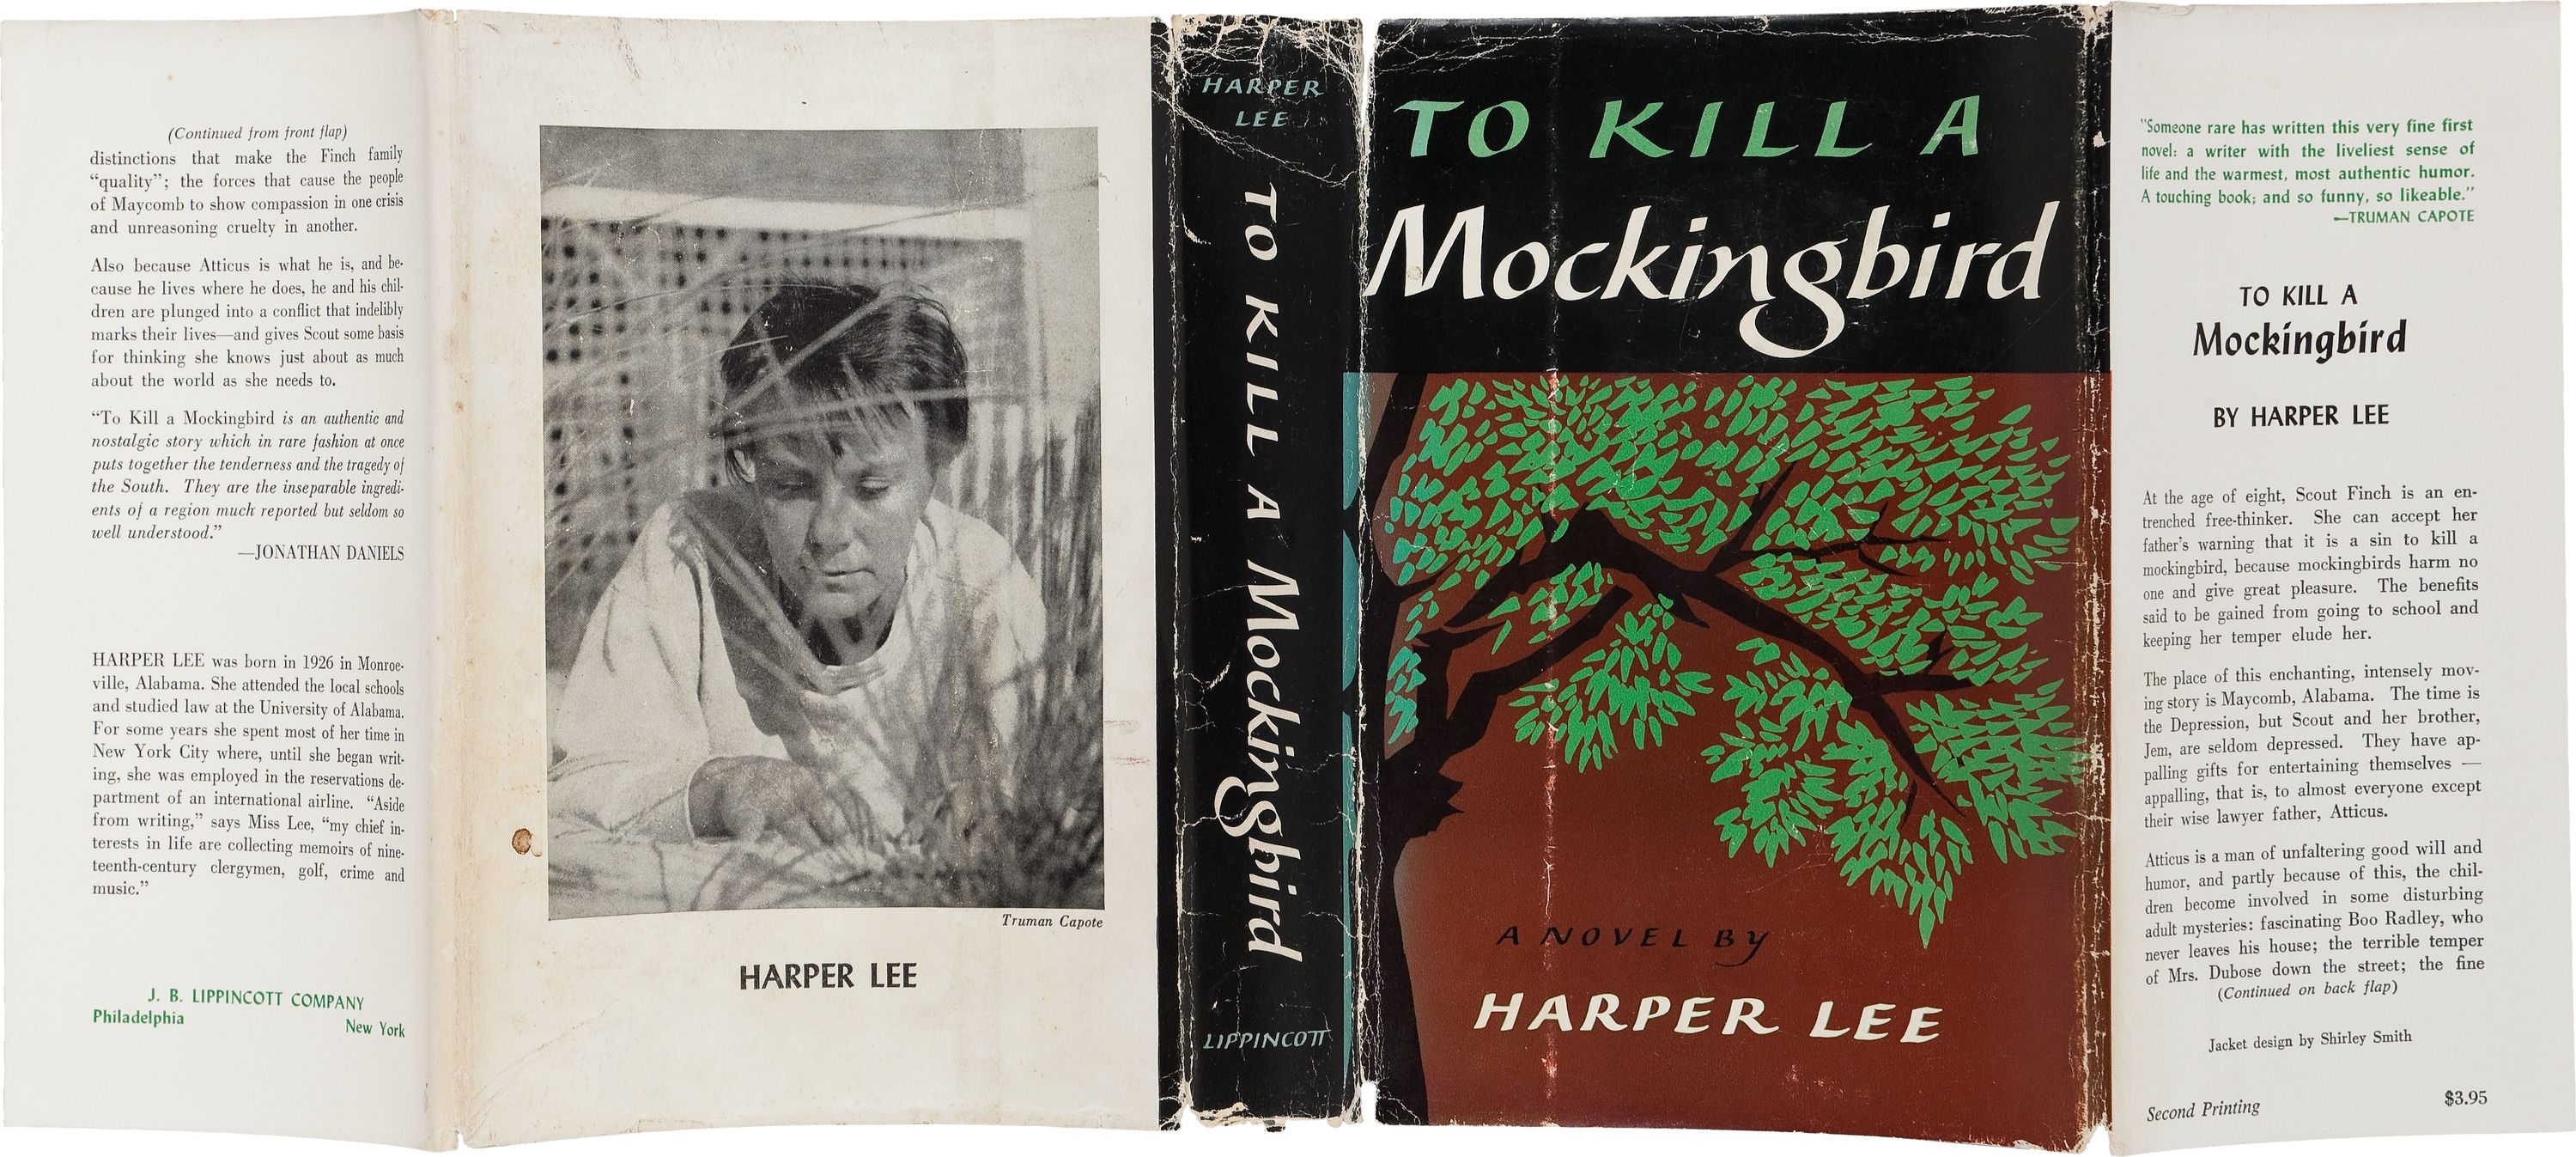 the social history of maycomb A summary of part one, chapter 1 in harper lee's to kill a mockingbird learn exactly what happened in this chapter, scene, or section of to kill a mockingbird and.